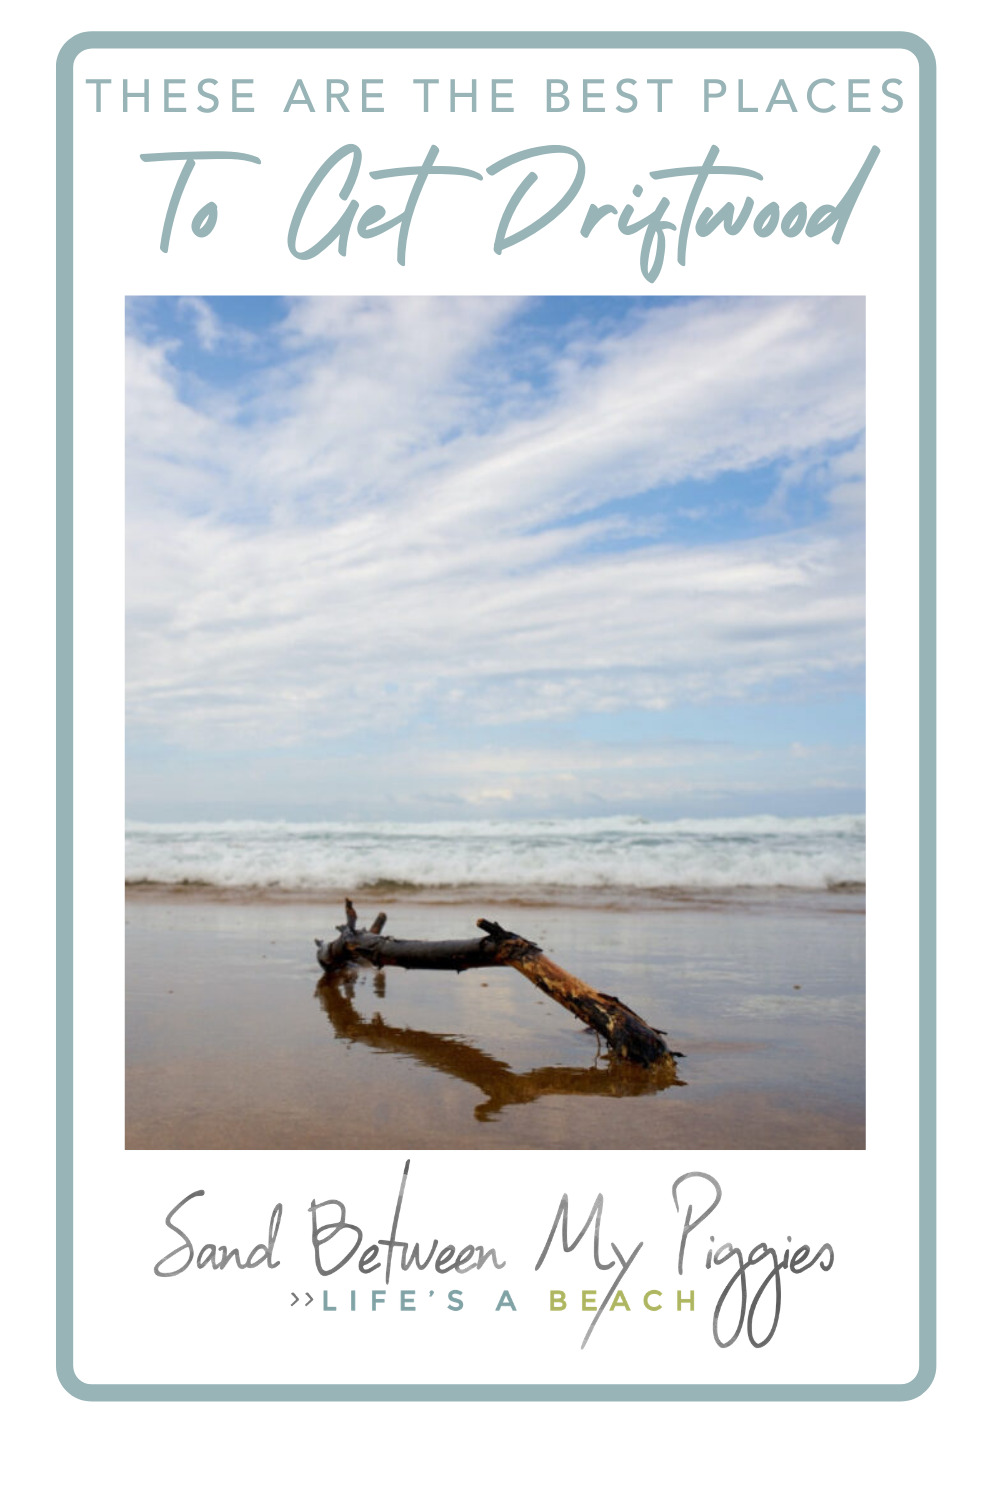 Sandbetweenmypiggies.com will add a touch of relaxation to every aspect of your life. From travel to decor, always feel like you're having a beach day! Check out these places you should buy driftwood from for a gorgeous, beachy feel.